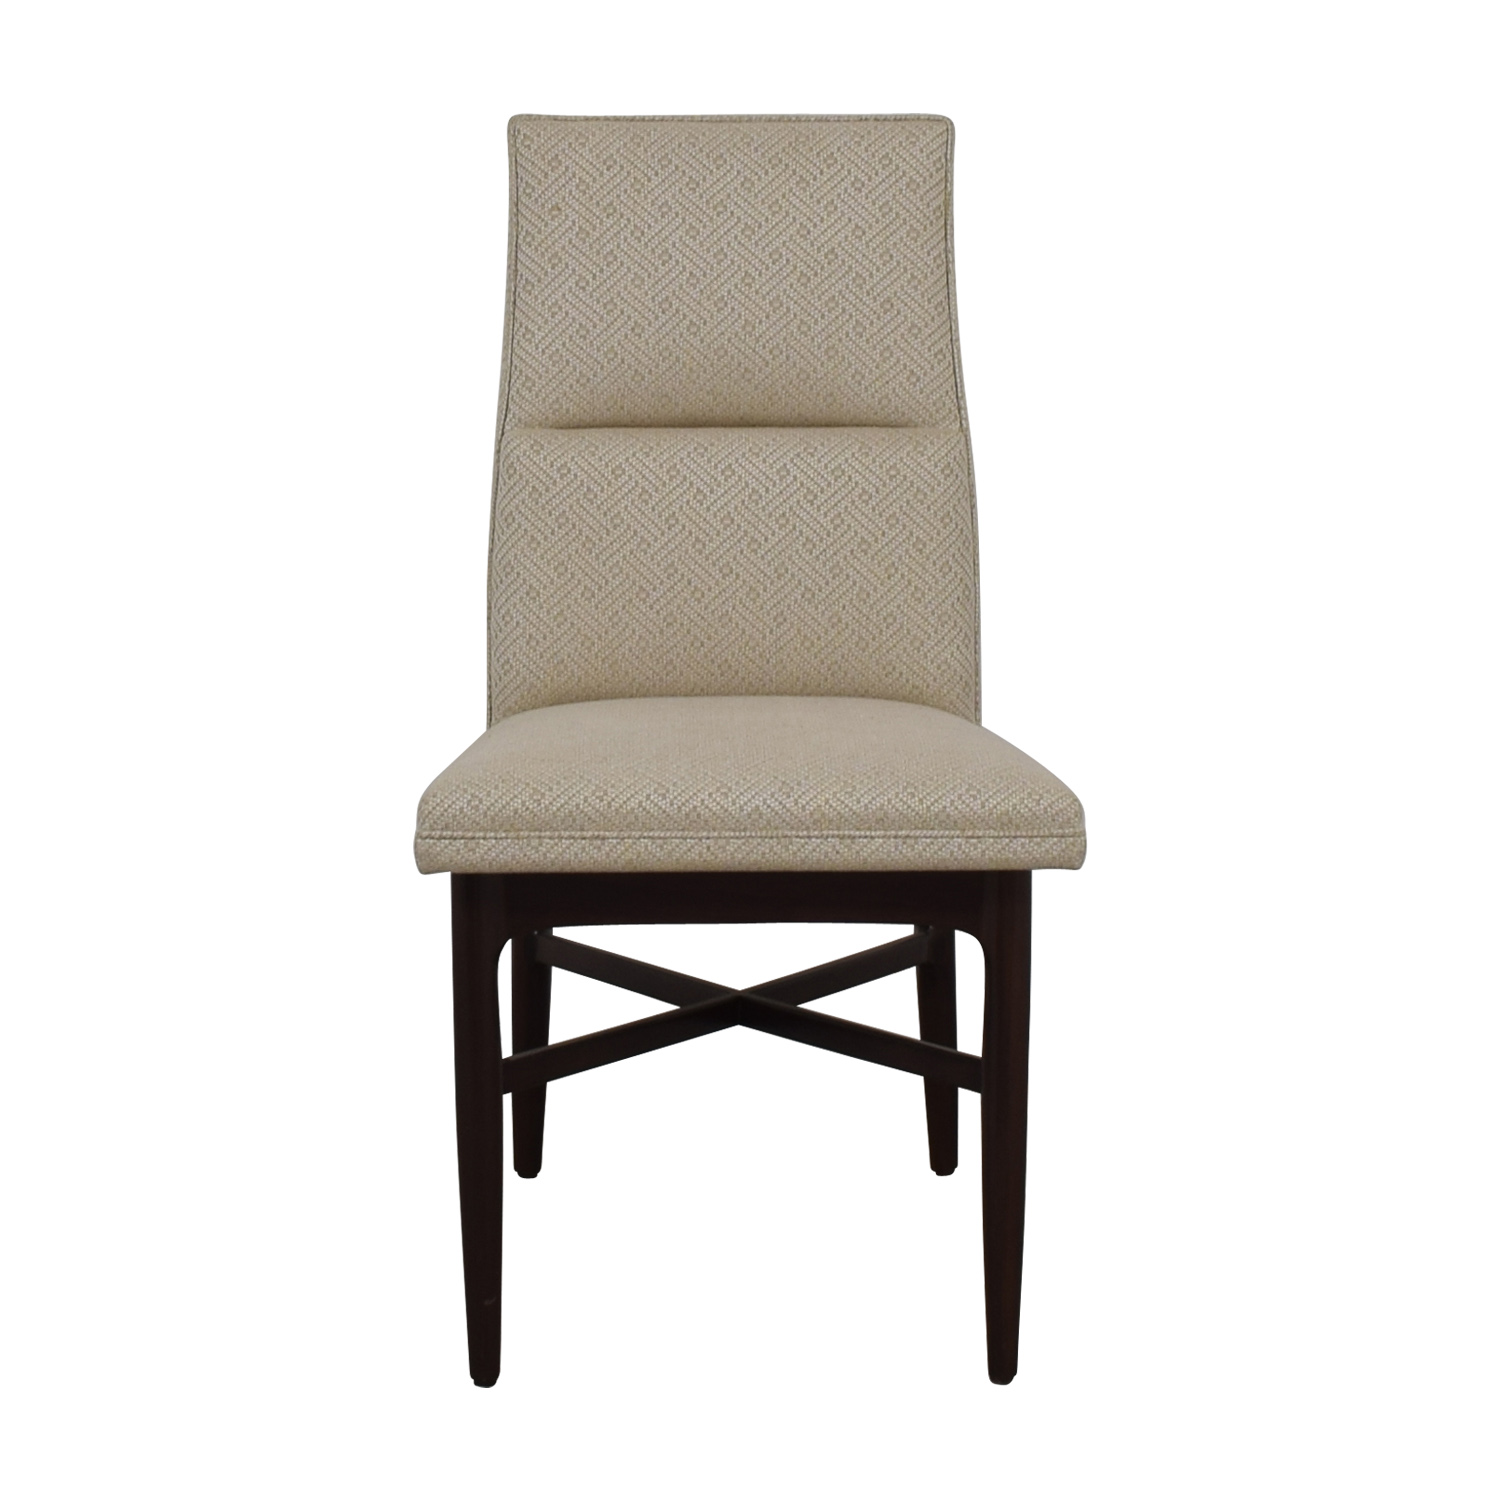 Furniture Masters Furniture Masters Modern Mid Century Accent Chair